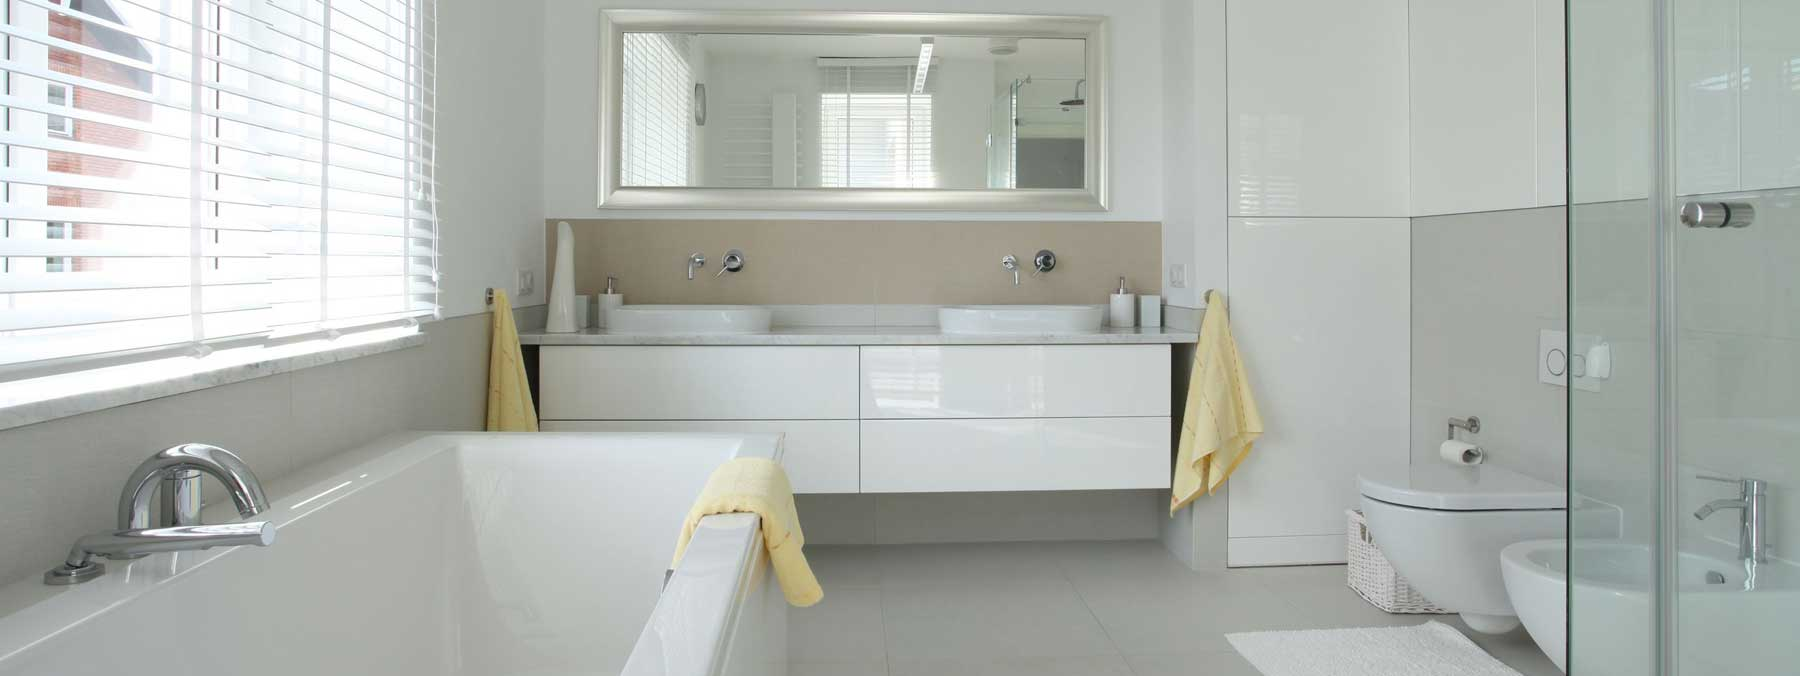 New 50 bathroom renovations sydney cost design ideas of for Bathroom design and renovations